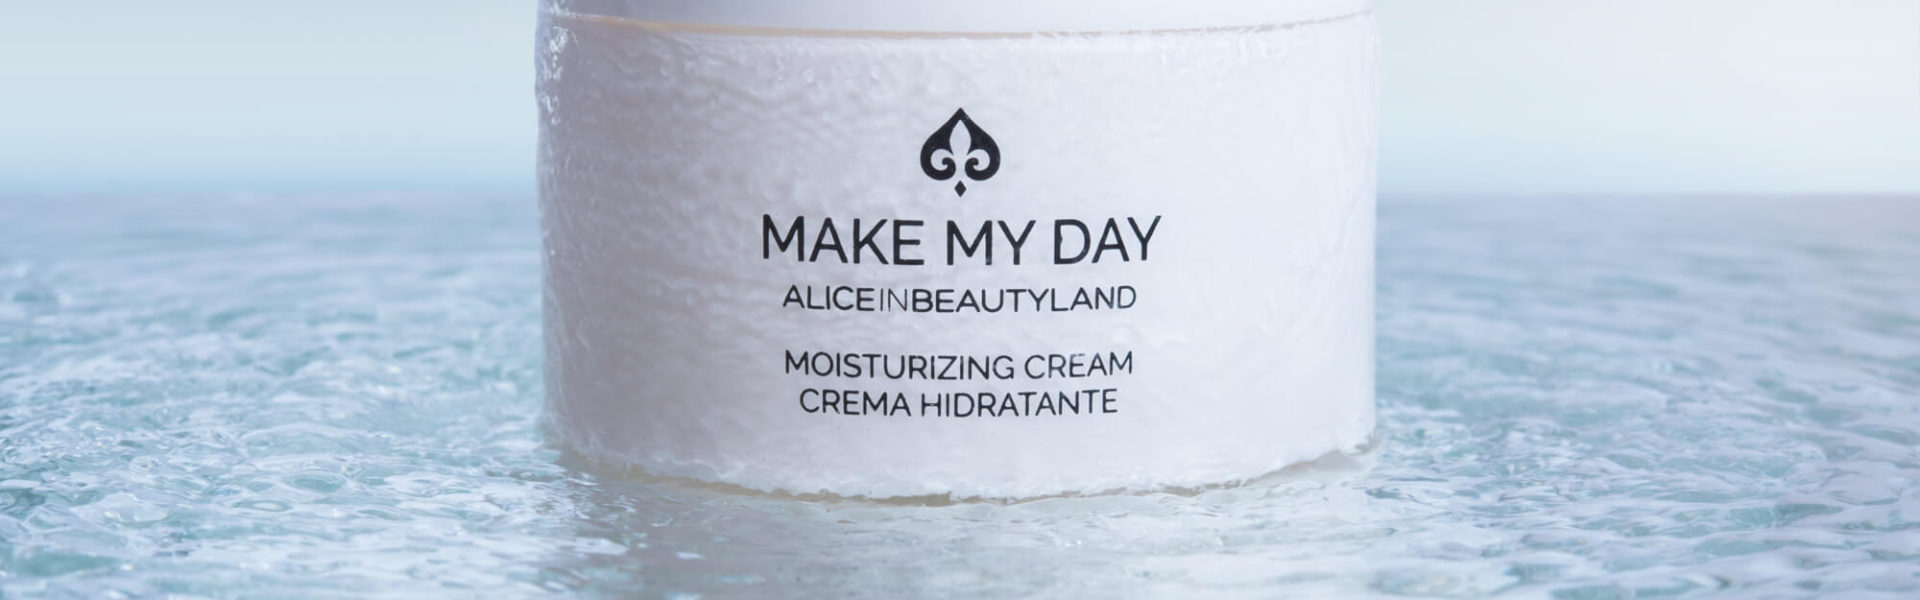 Cuidados básicos de belleza - Alice in Beautyland - Make my day - Crema hidratante facial